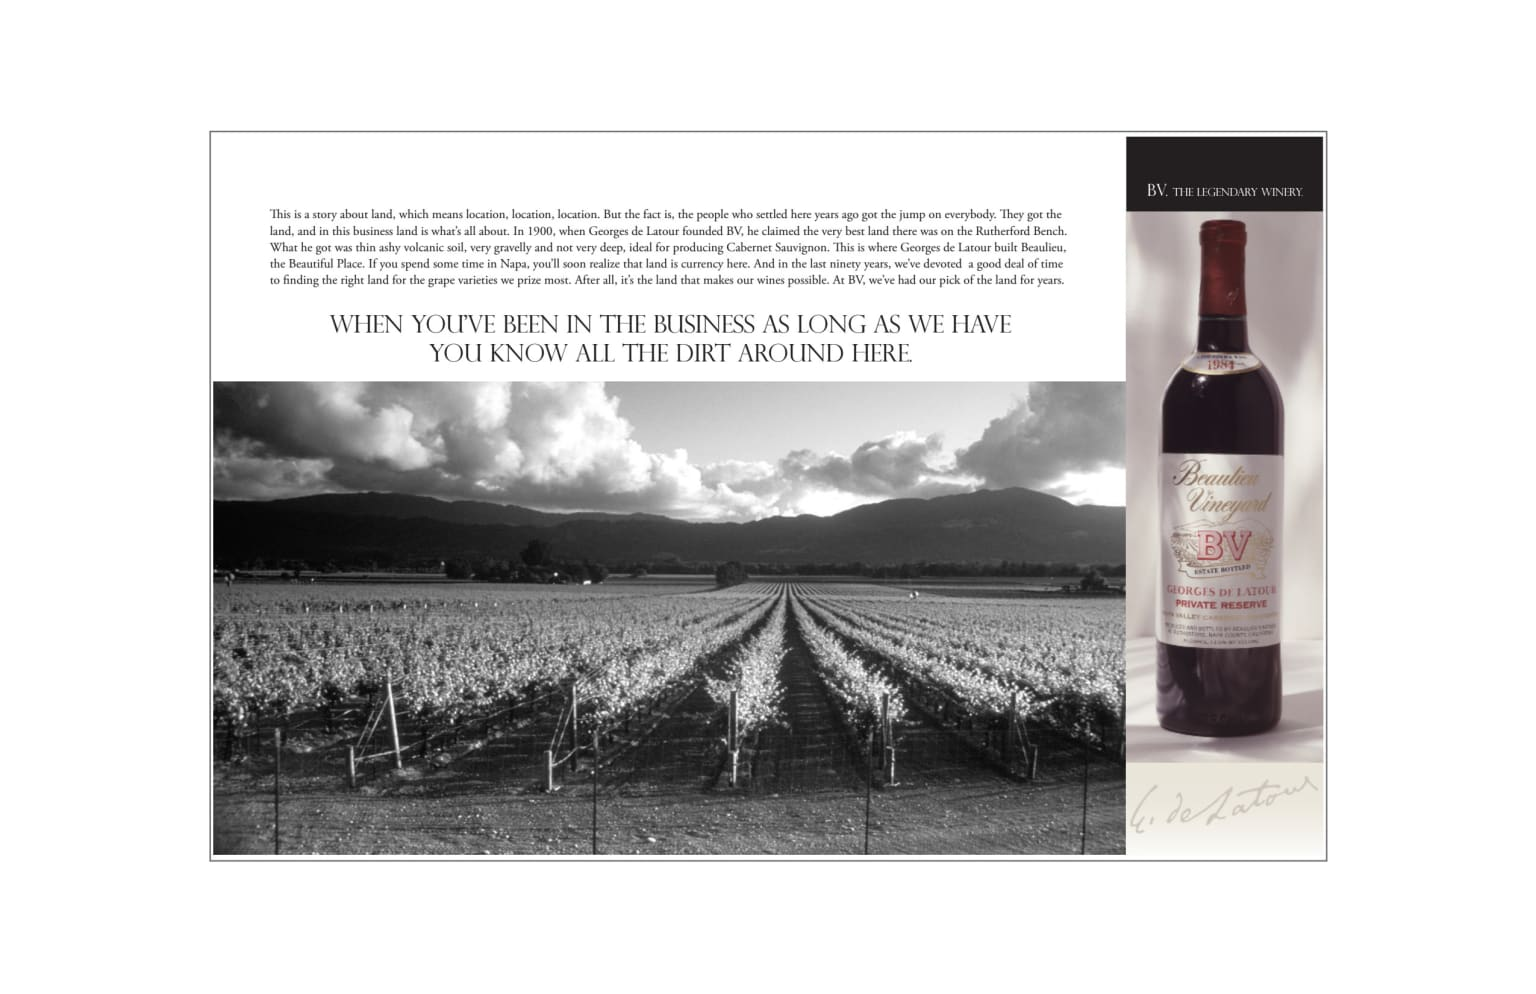 Print campaign for Beaulieu Winery